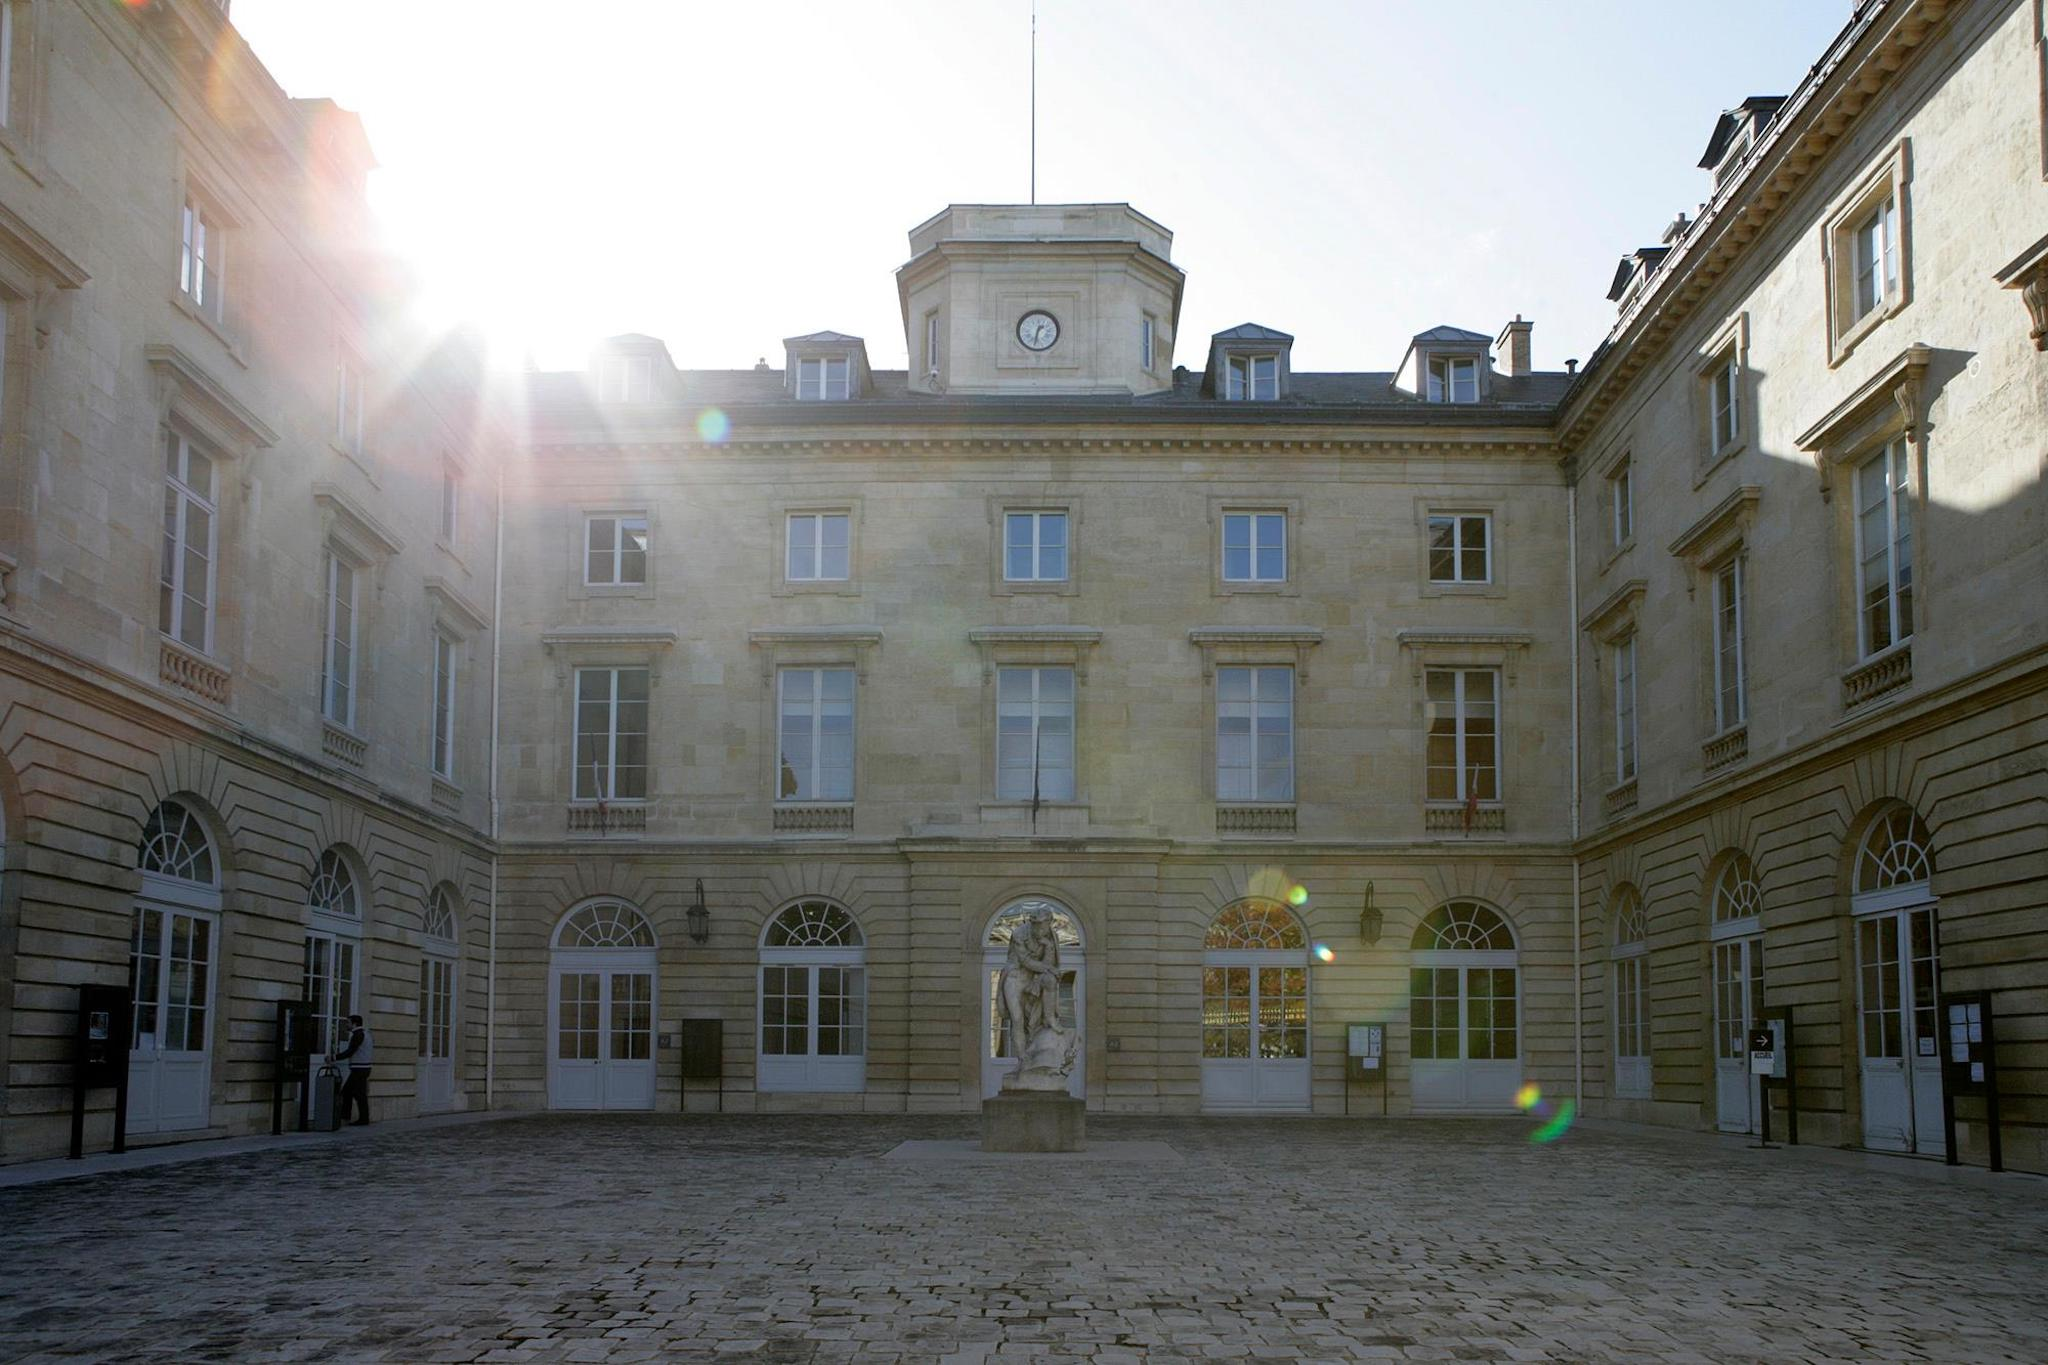 The Collège de France building in Paris. It is a stone symmetrical building with white window frames and an inner courtyard. At the top of the building in the centre is a clock. In the centre of the courtyard is a sculpture of a man. The sun is shining from behind the building in the top left hand corner, sending light streaks diagonally across the image.